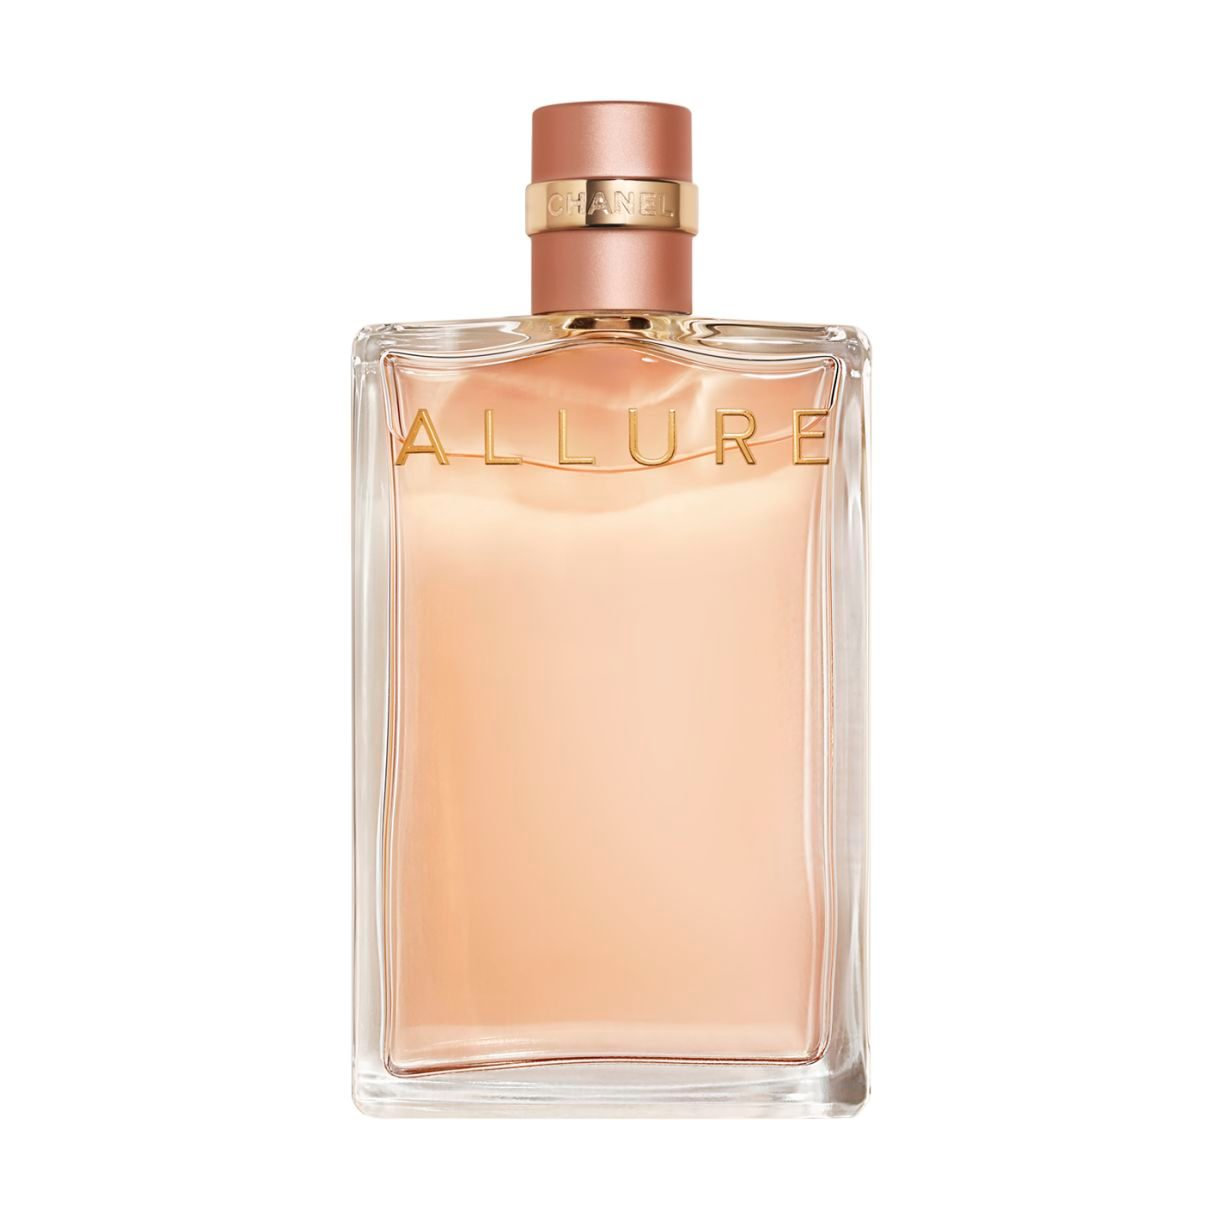 ALLURE EAU DE PARFUM SPRAY 35ml